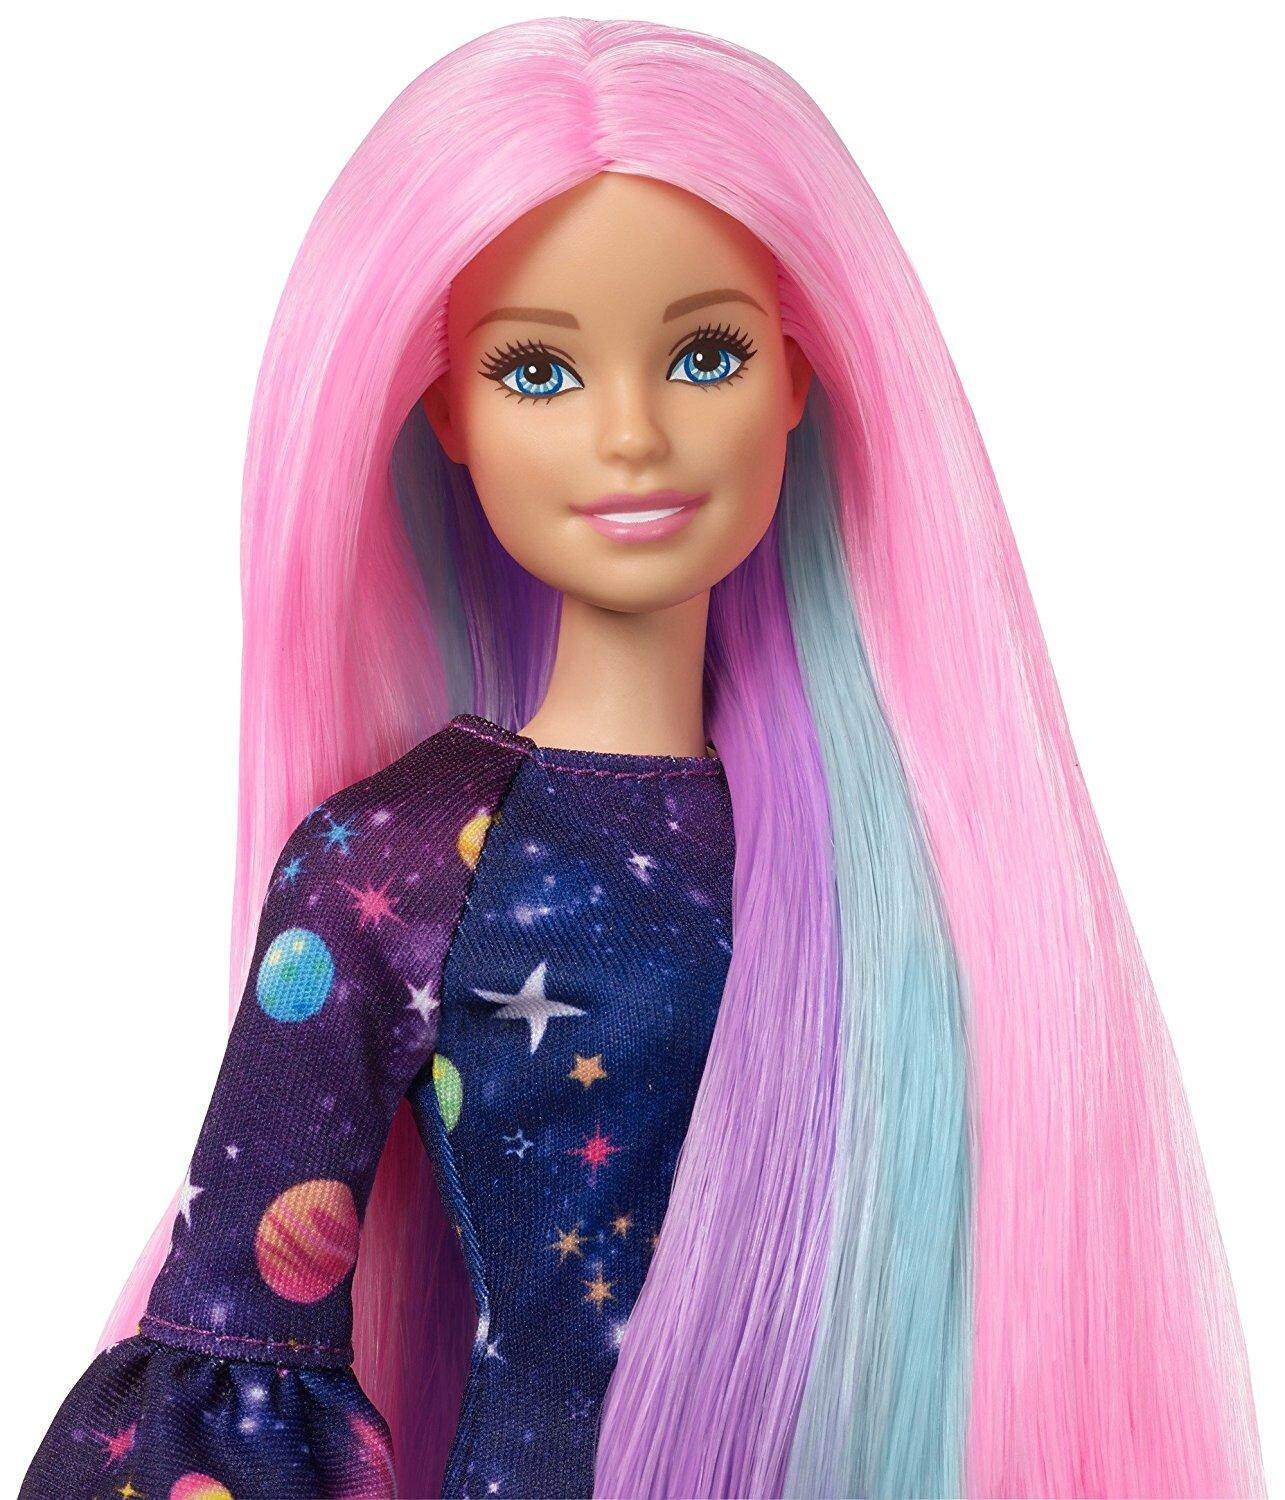 [BARBIE] Colour Surprise Doll (5 yrs+)